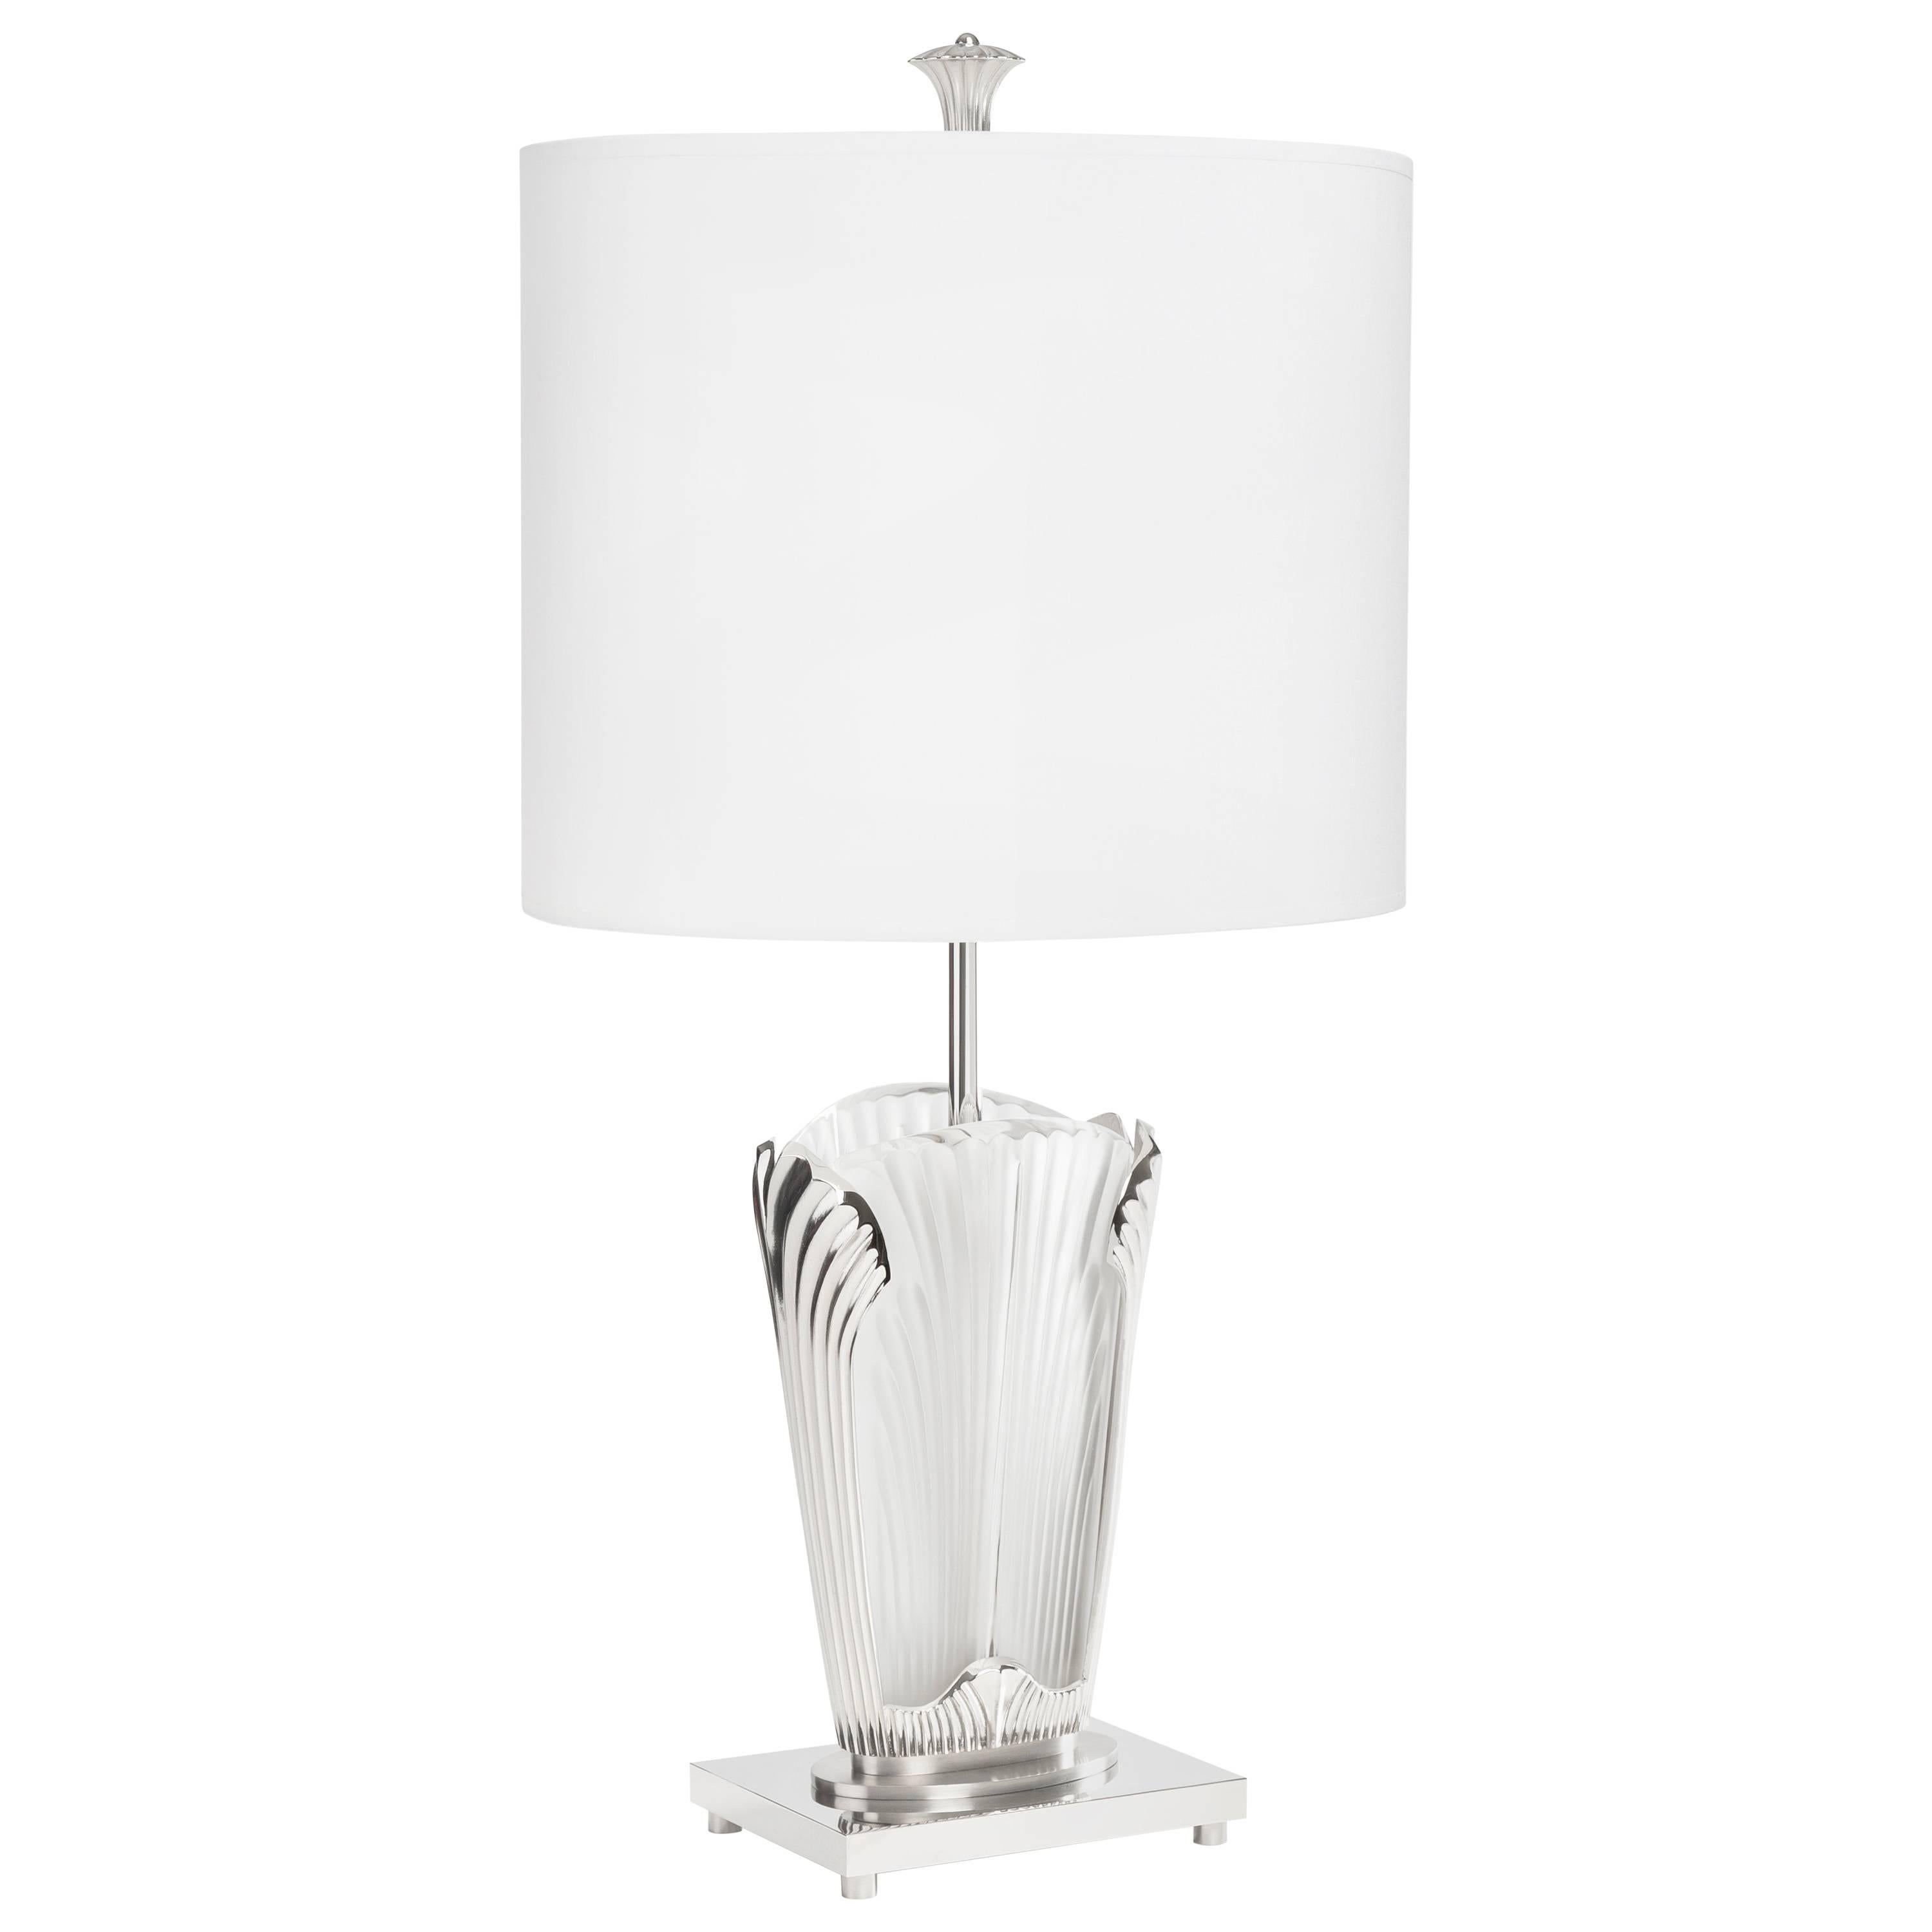 Ginkgo-Inspired Crystal and Brushed Nickel Table Lamp by Lalique & Delisle